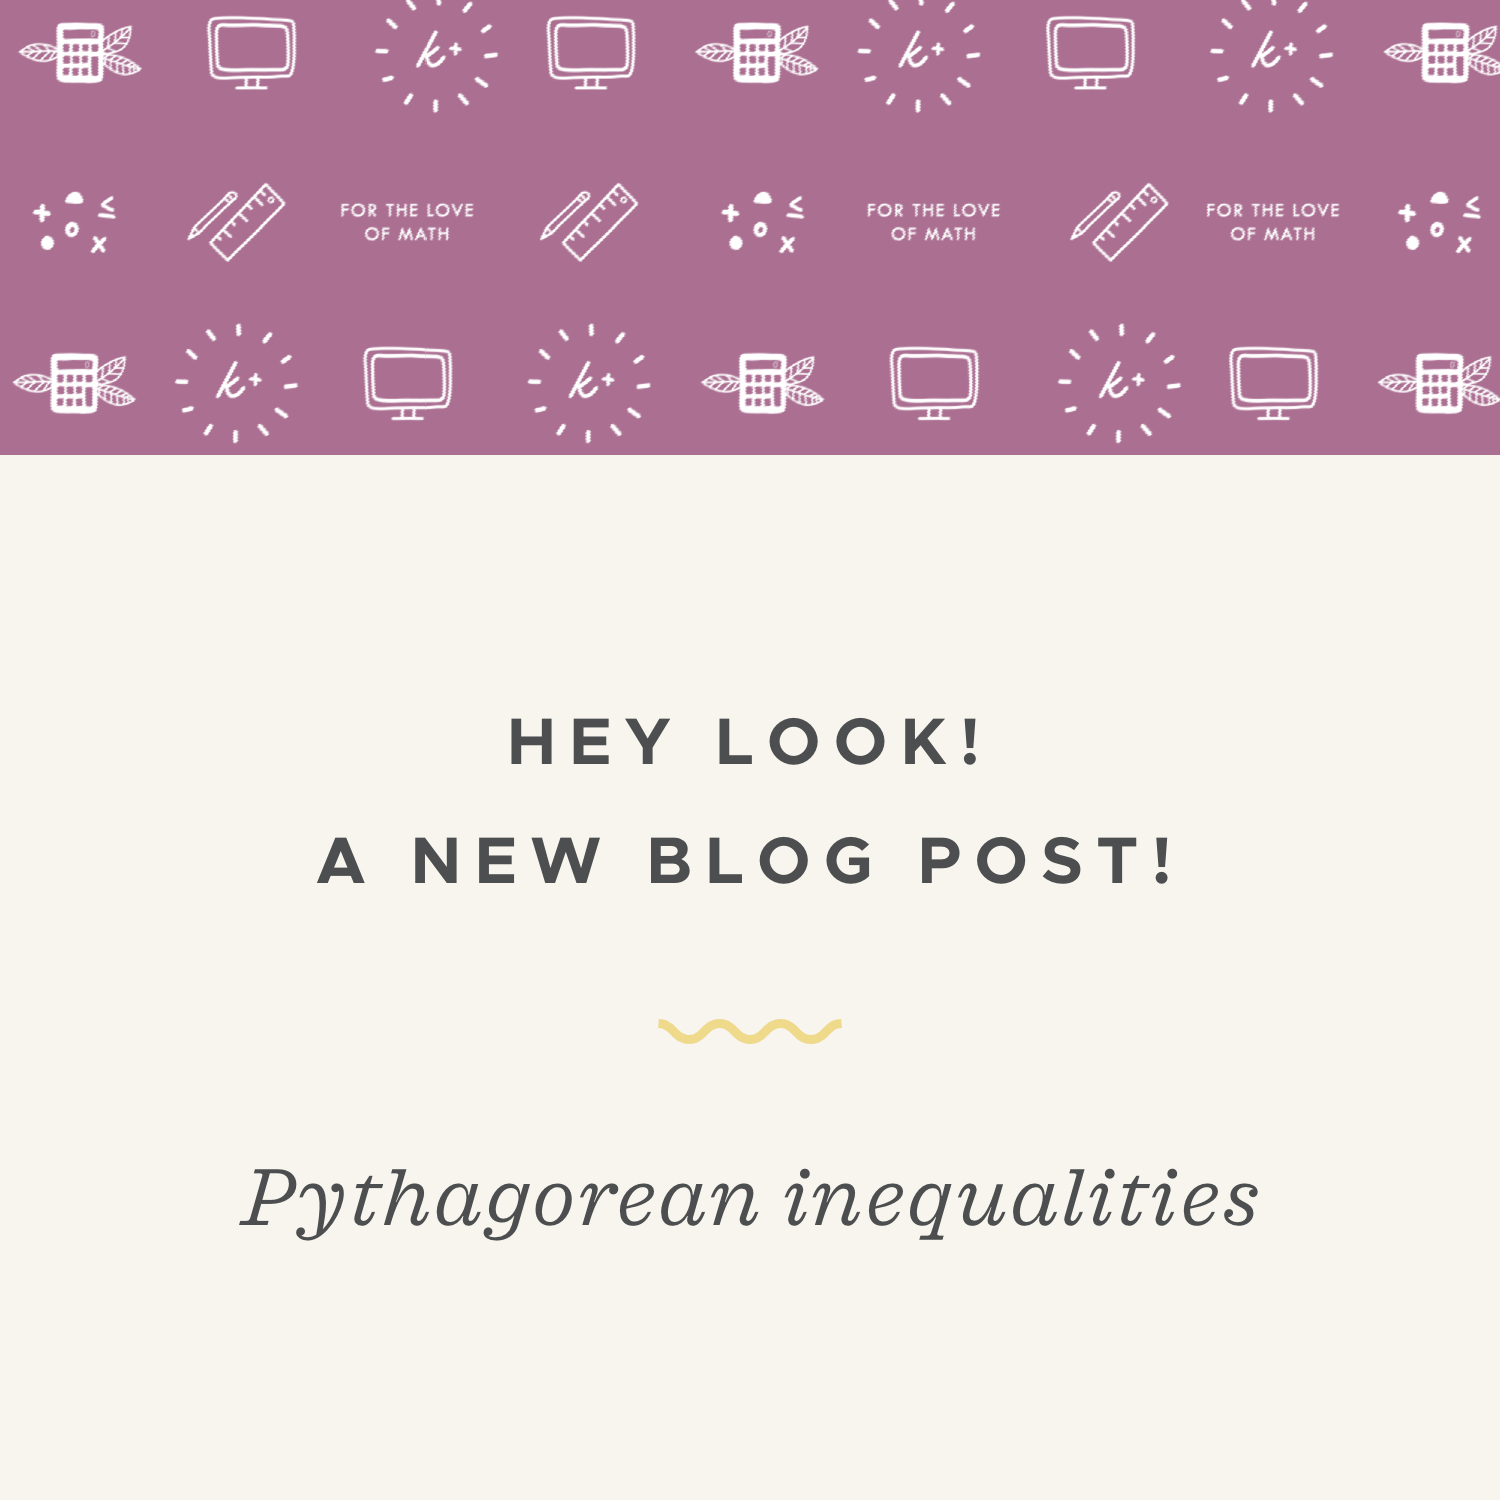 Pythagorean inequalities blog post.jpeg